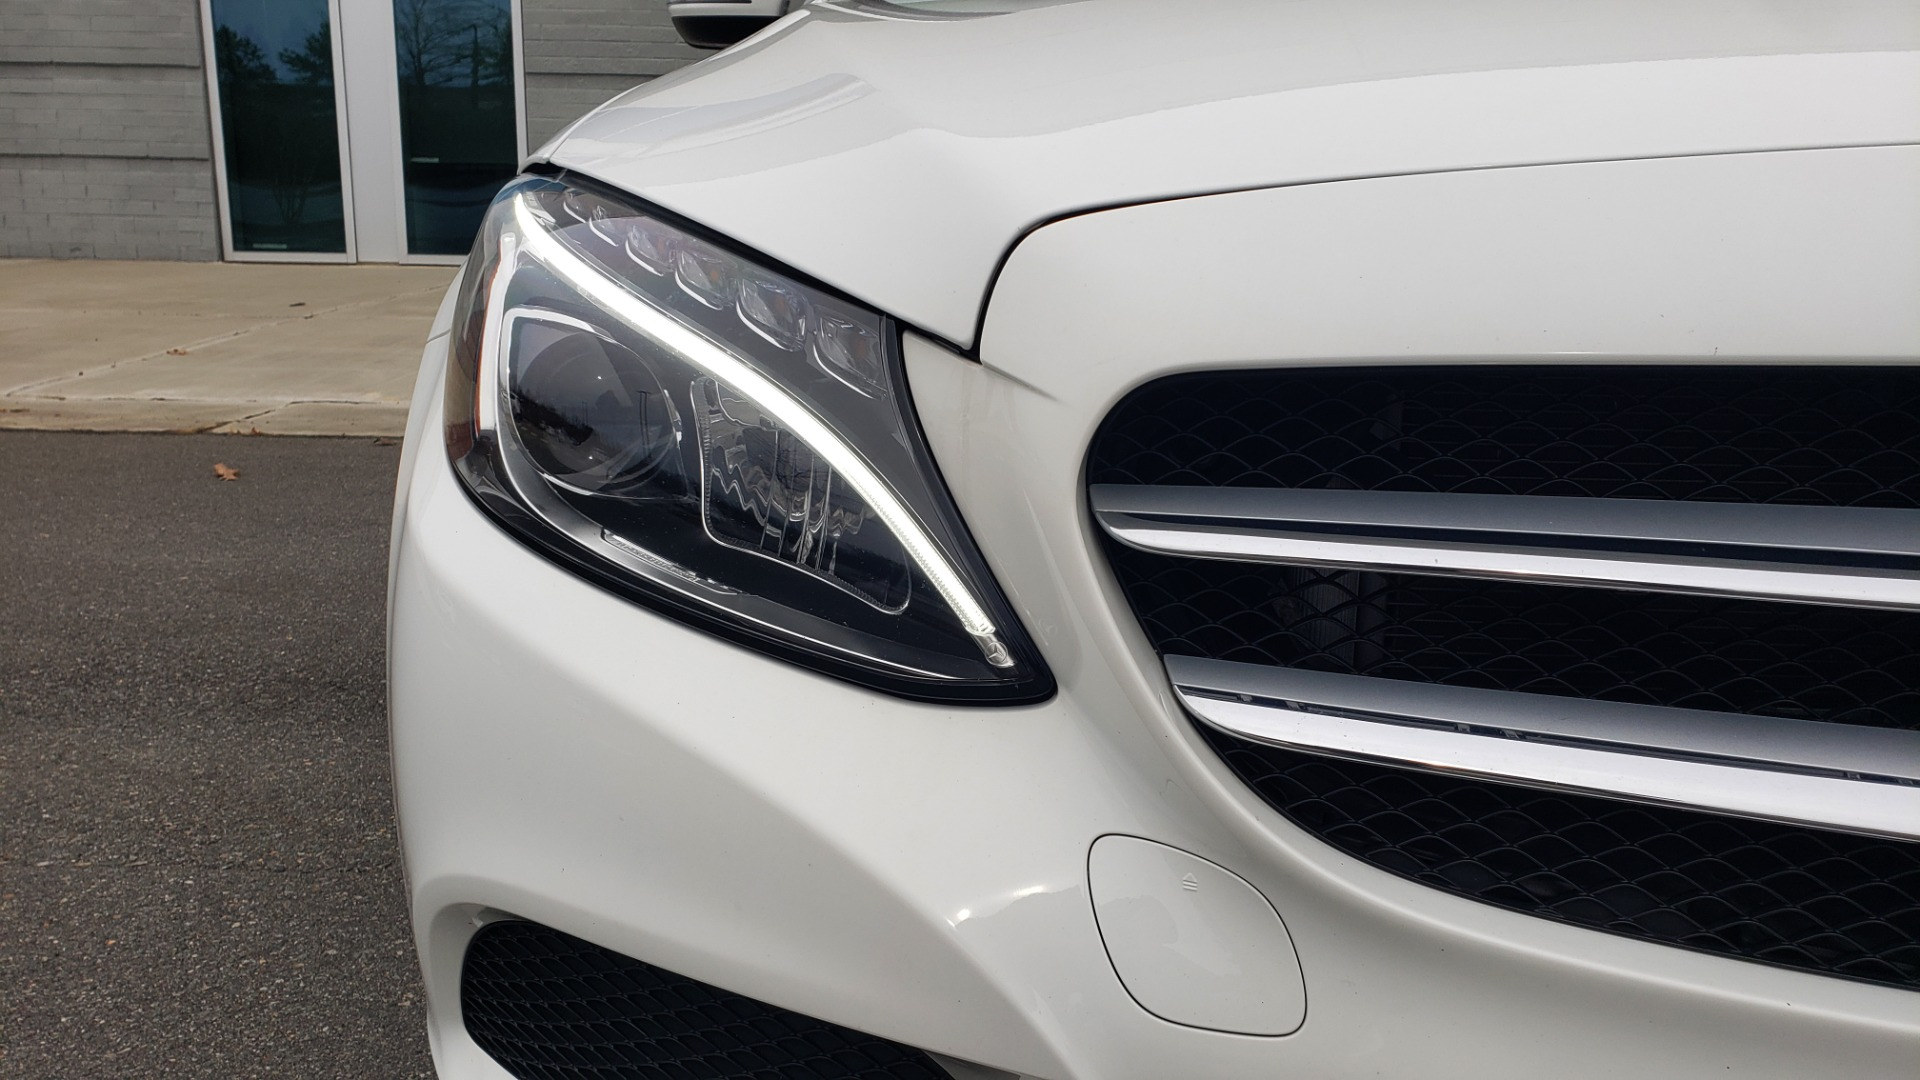 Used 2018 Mercedes-Benz C-CLASS C 300 PREMIUM / NAV / HTD STS / APPLE CARPLAY / REARVIEW for sale Sold at Formula Imports in Charlotte NC 28227 21